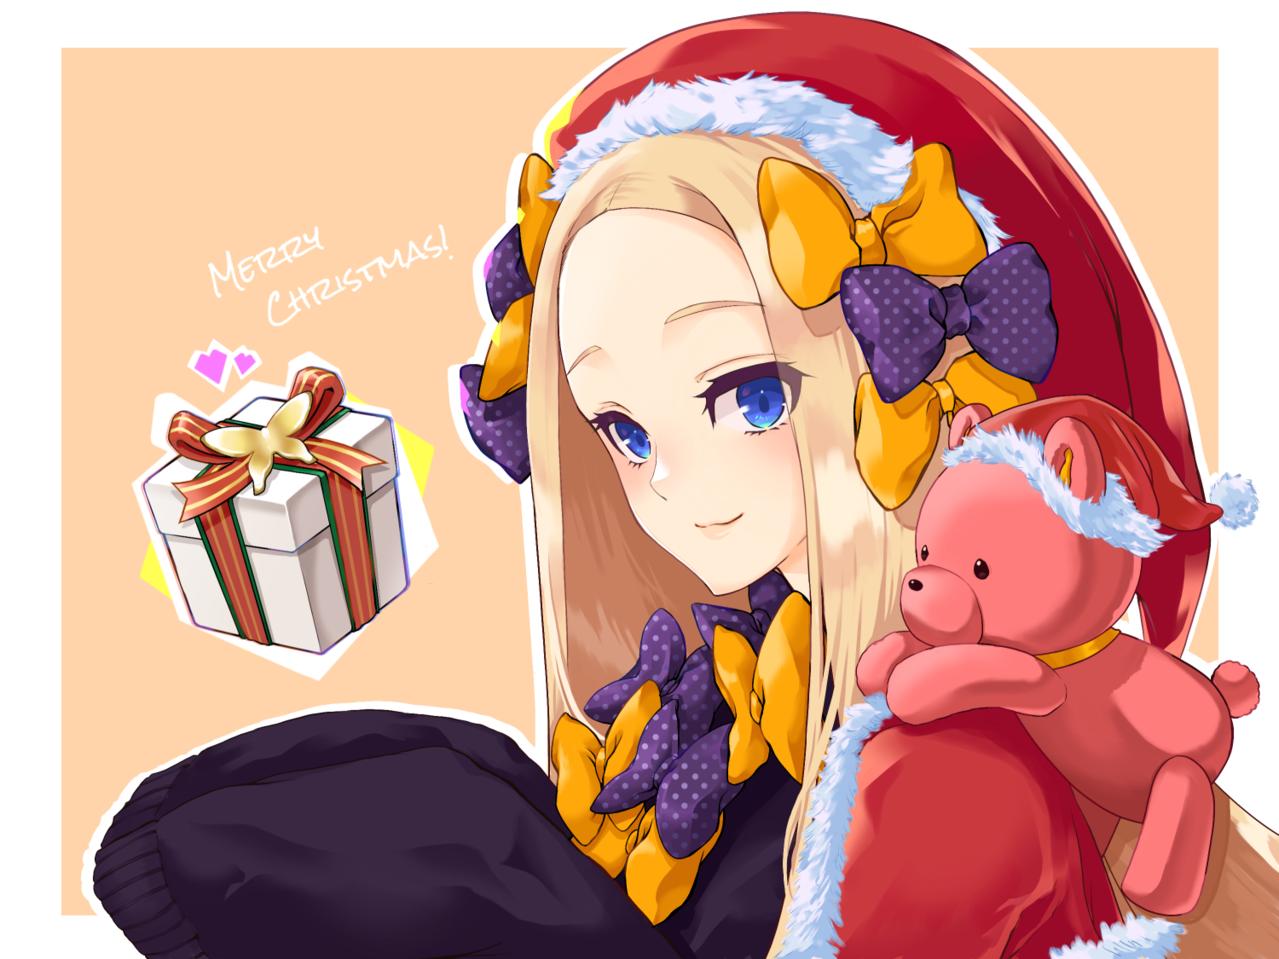 Xmas・アビゲイル / Fate/GrandOrder Illust of PANCo dec.2019Contest Christmas fanfic アビゲイル・ウィリアムズ(FGO) procreate Fate fanart アビゲイル Fate/GrandOrder